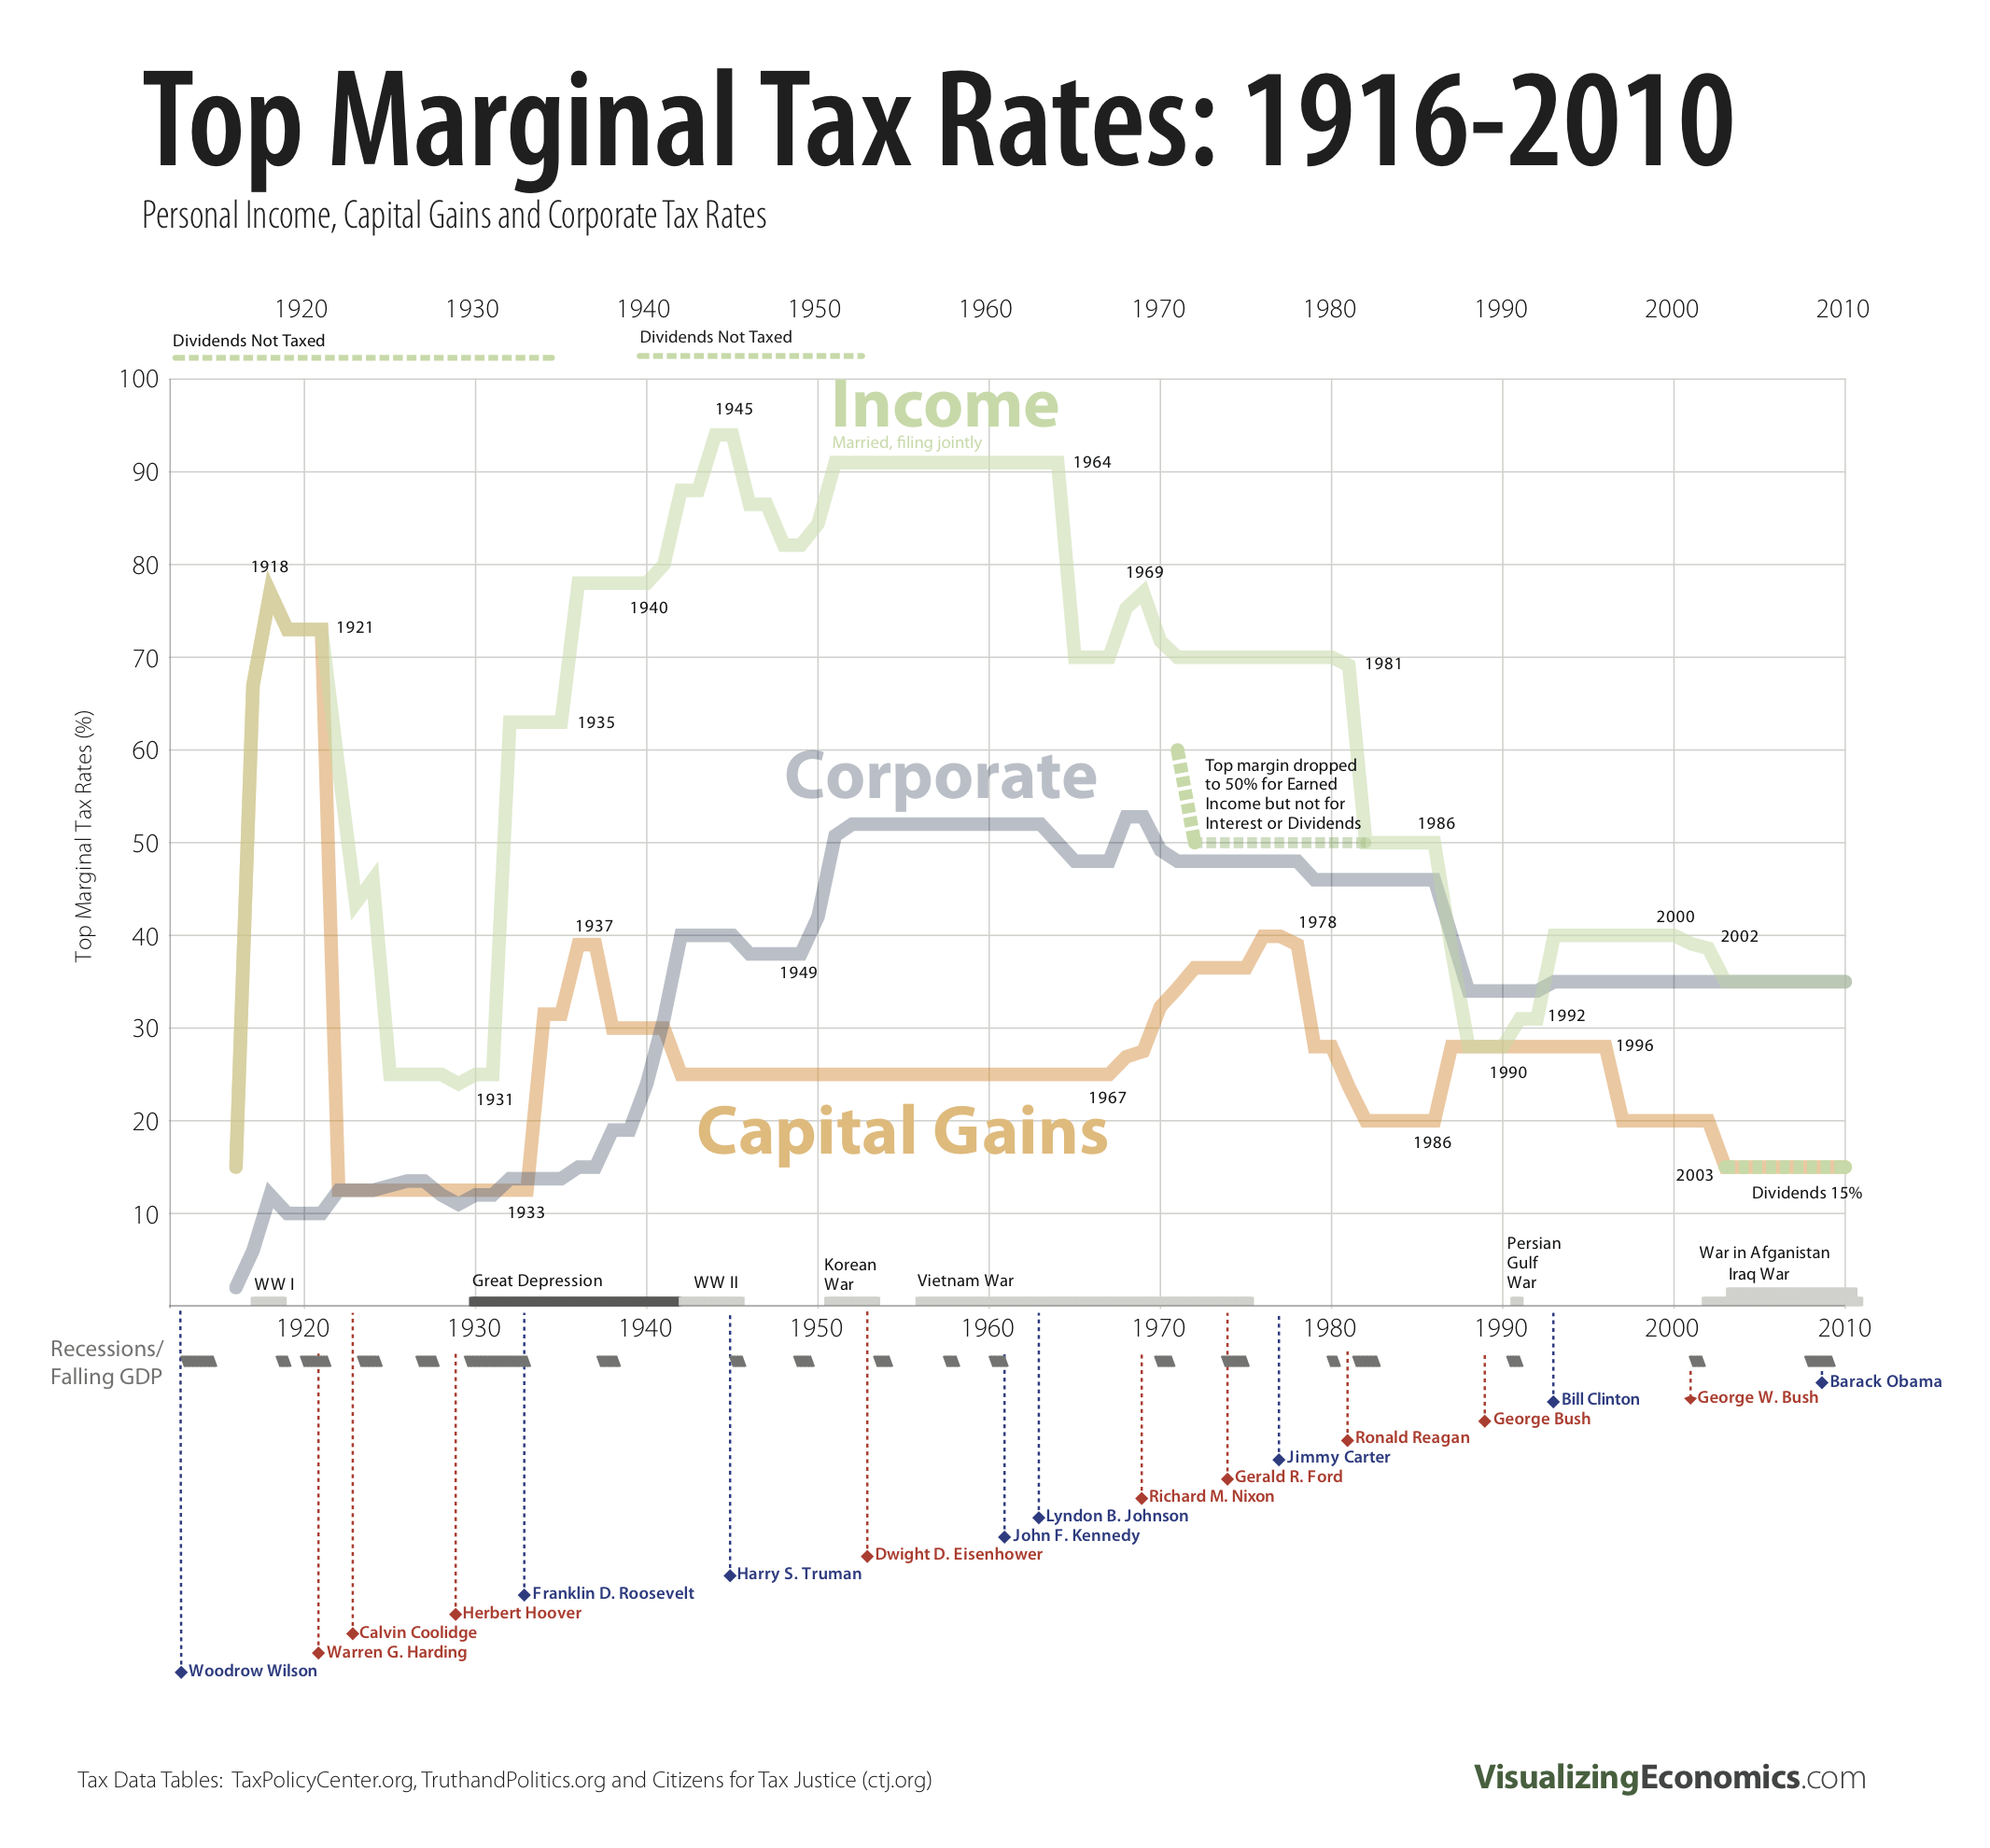 Historical Tax Rates